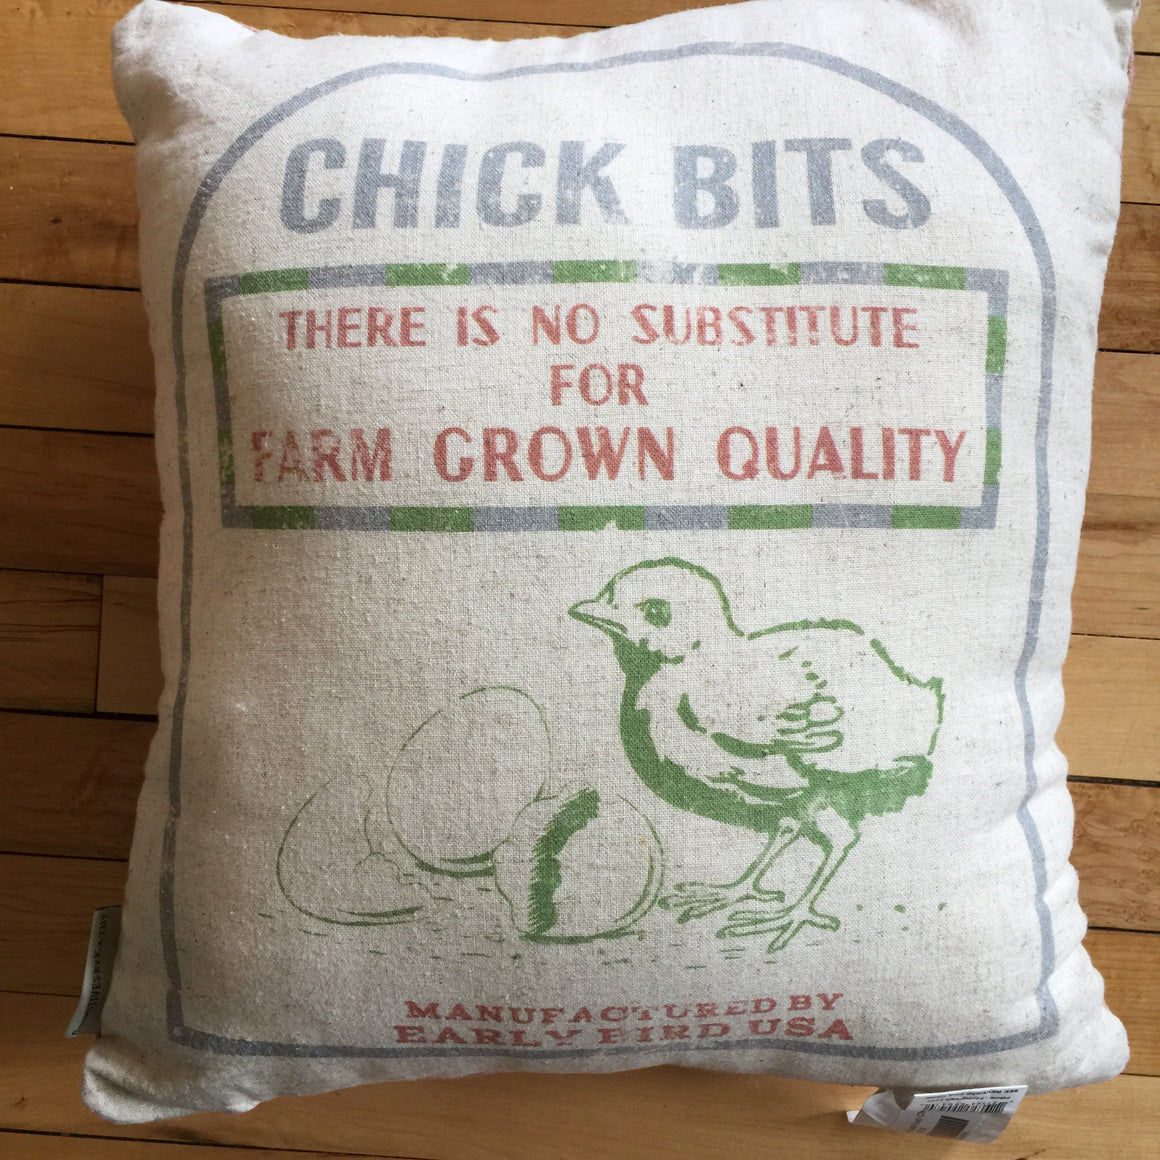 Pillow - Farmgrown Quality Feed / Chick Bits